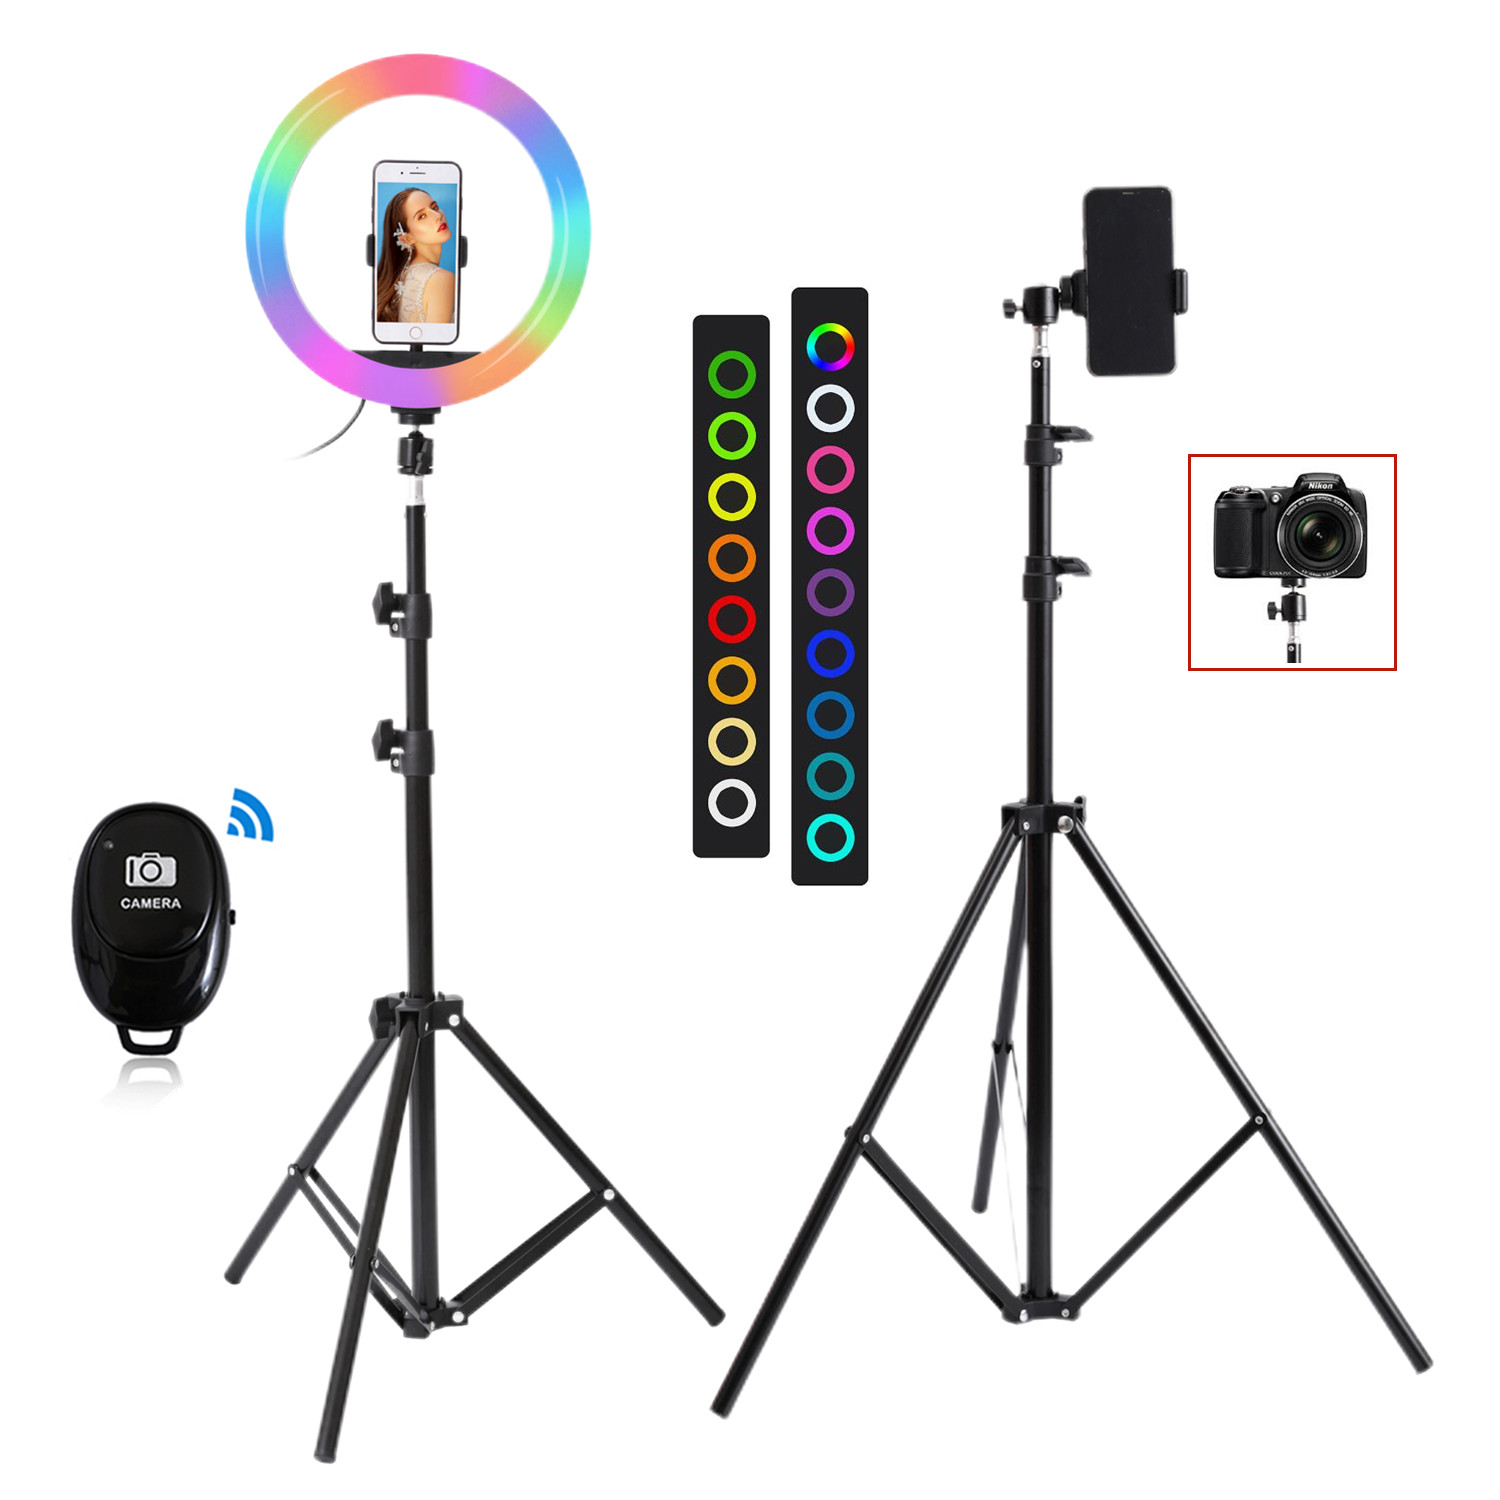 26cm 33cm RGB Selfie Ring LED Light with Stand Tripod Photography Studio Ring Lamps for Phone Home v7 VC